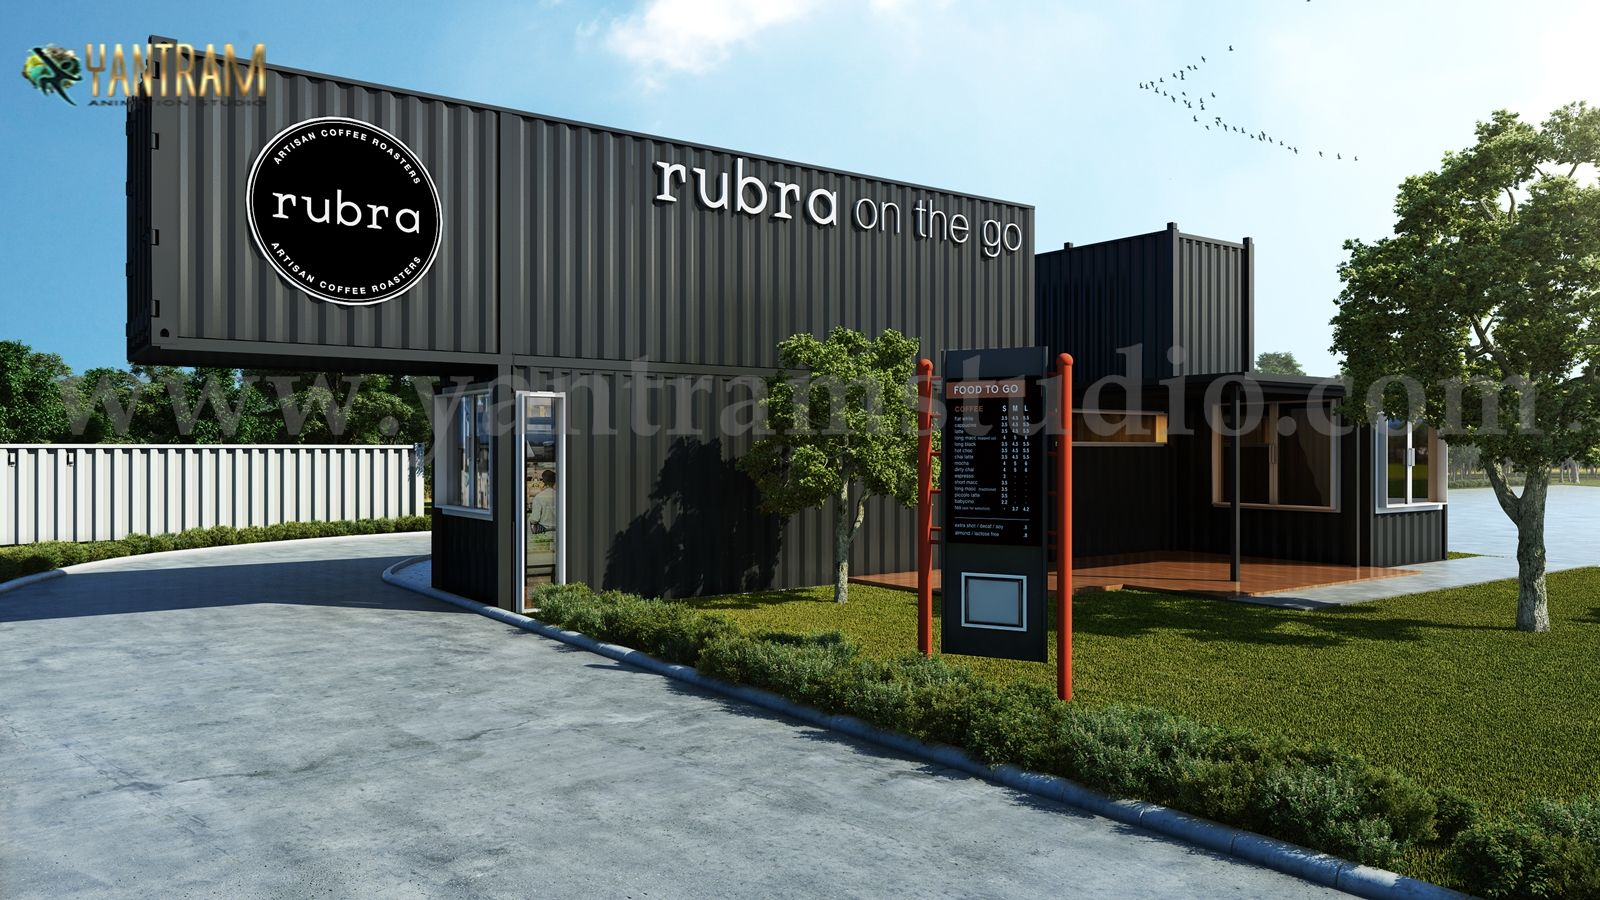 , Rubra Coffee Shop 3D Exterior Design by Yantram Architectural Visualization Studio –  New York – USA, Hot Models Blog 2020, Hot Models Blog 2020